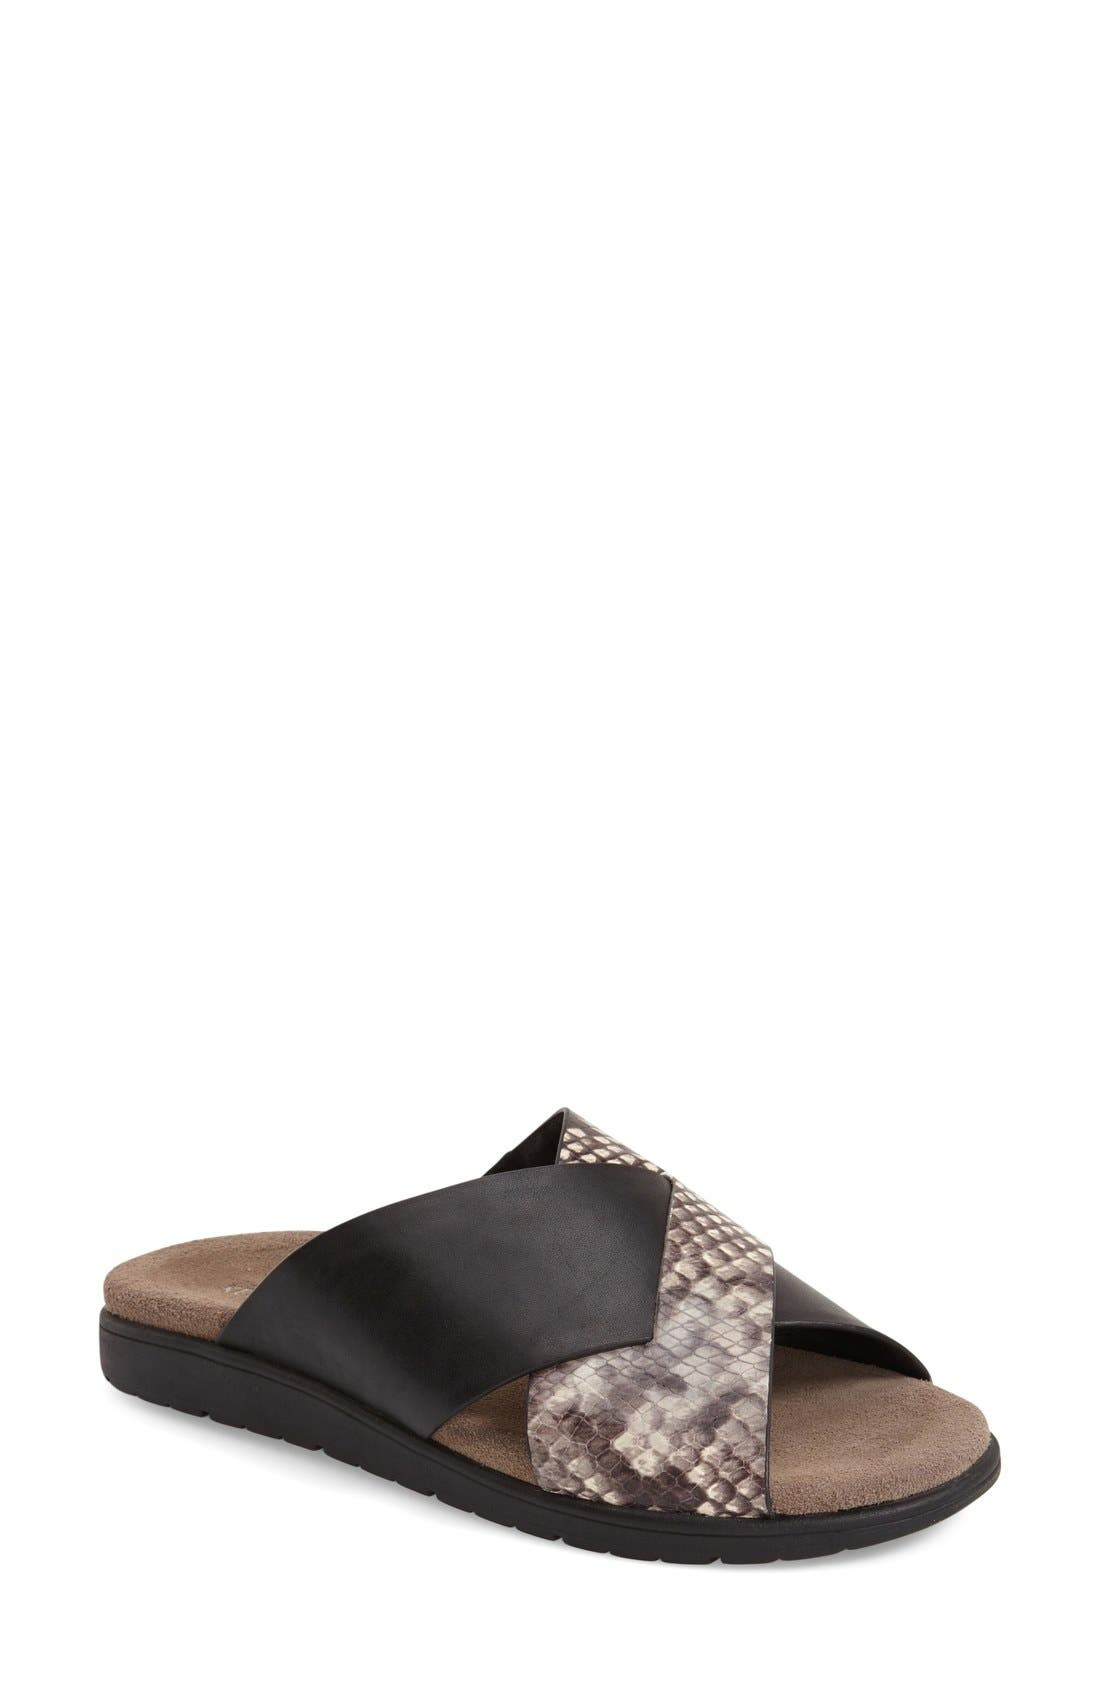 KENNETH COLE NEW YORK 'Maxwell' Sandal, Main, color, 001